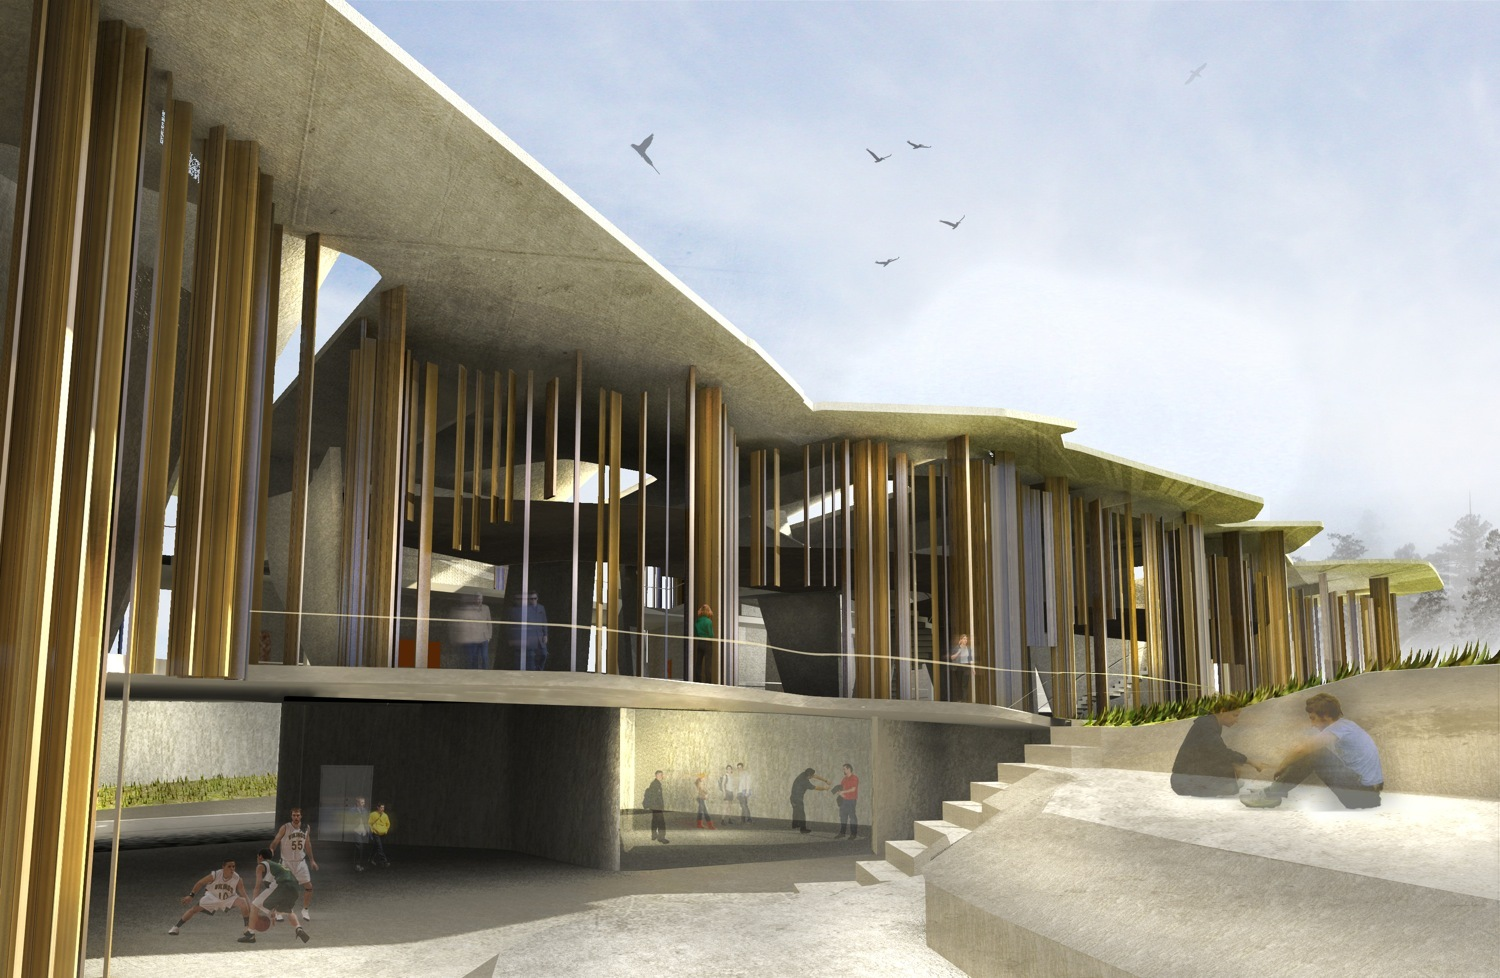 Architecture School Studio gallery of new soheil abedian school of architecture competition